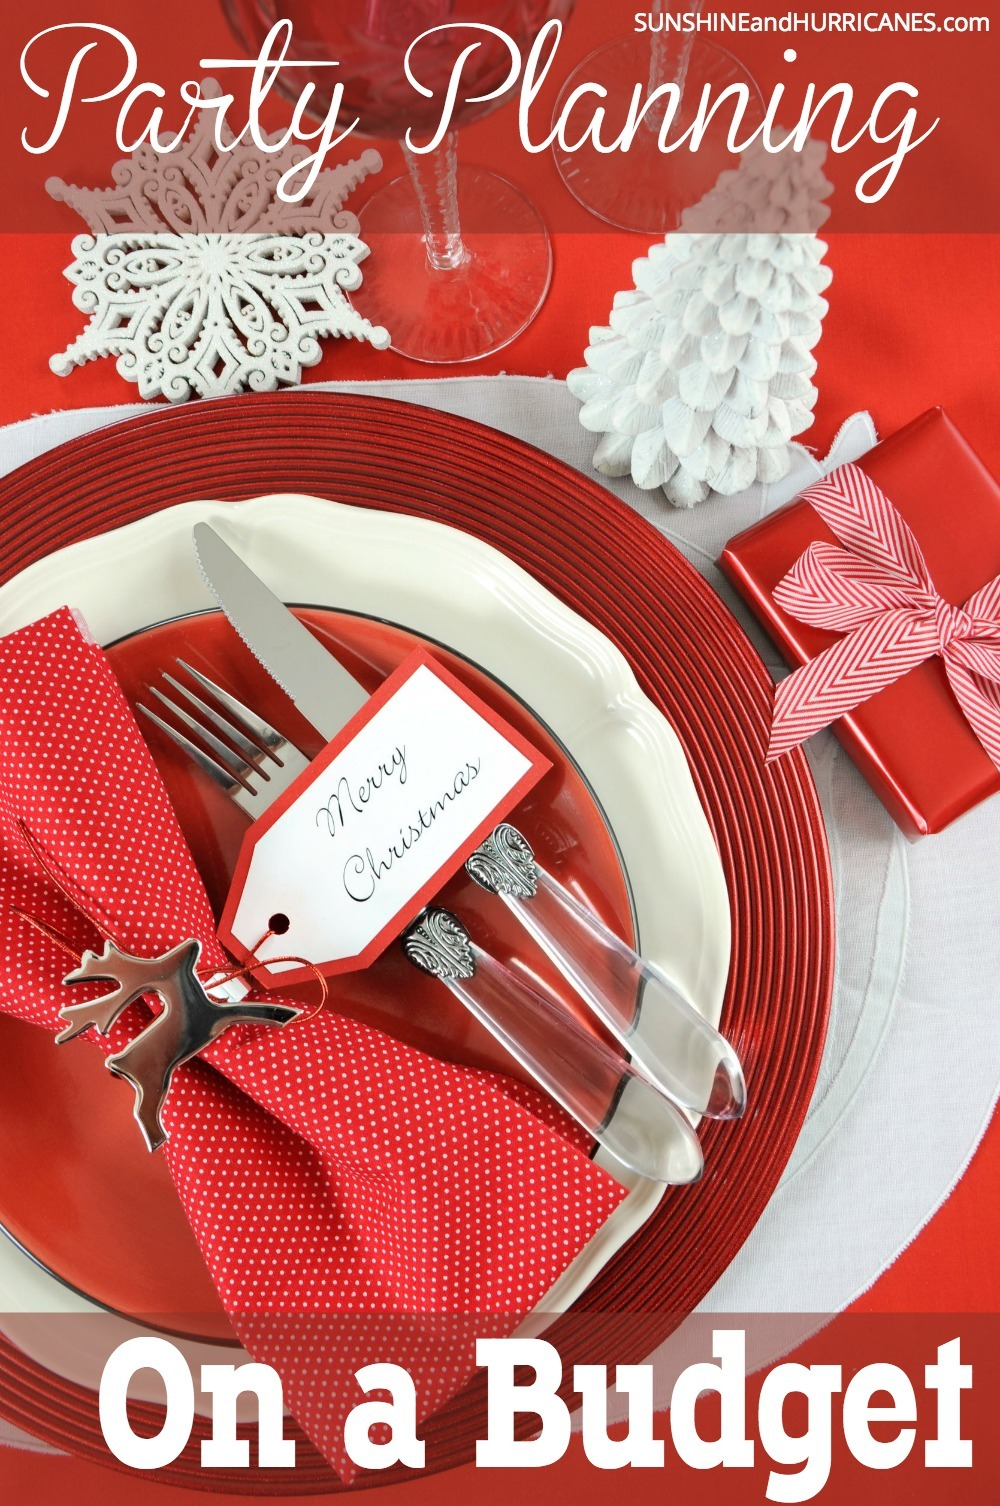 Whether you want to host an intimate gathering, a large family feast or an elegant evening you can wow everyone with your party planning skills without busting your budget. There are plenty of tips and tricks to help you save without losing out on any of the festive feel. We'll help with Party Planning on a Budget that will still look like you spared no expense. SunshineandHurricanes.com